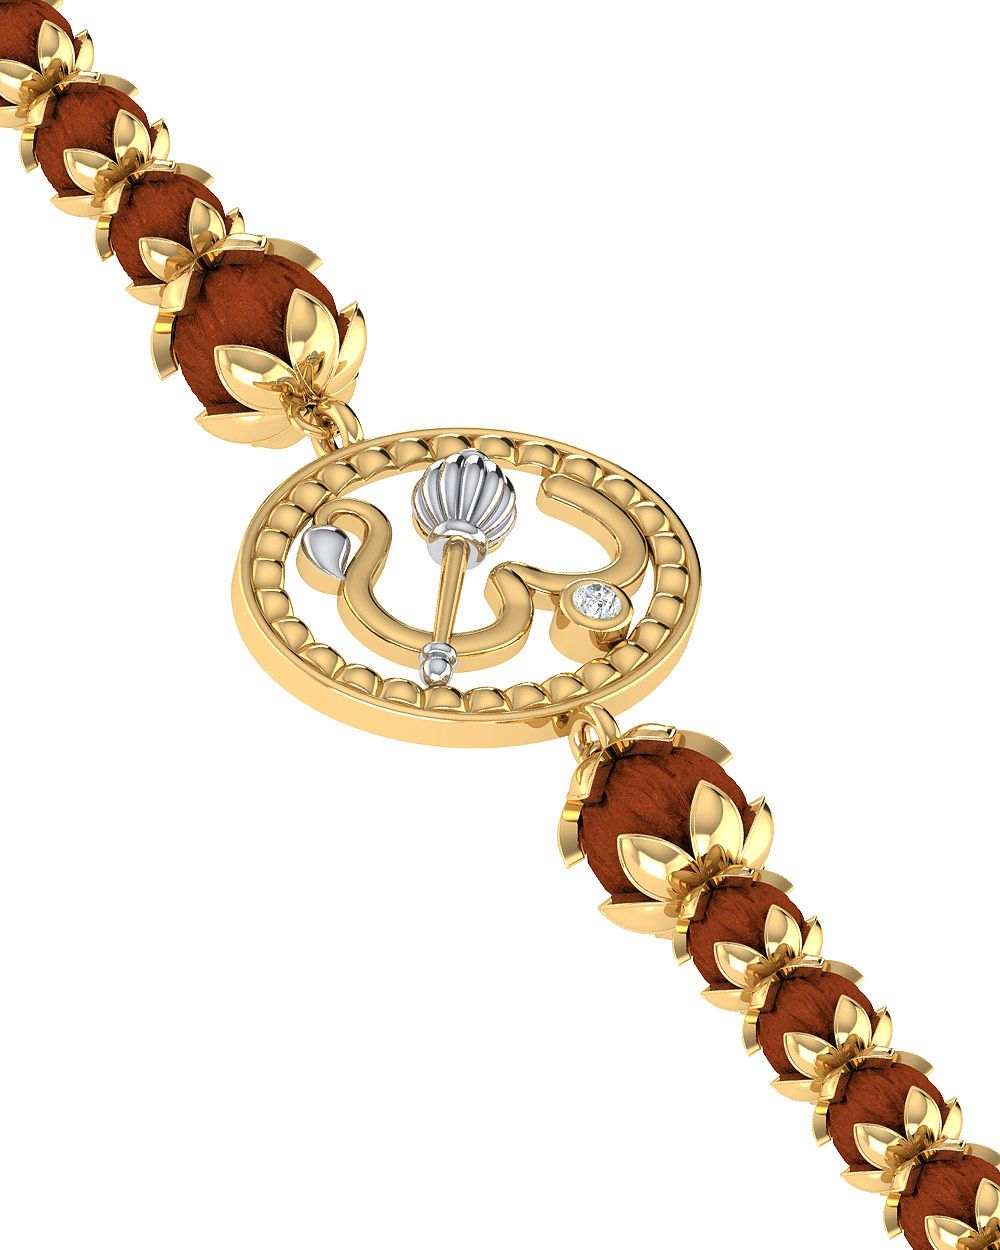 9131eed1b9 Festive And Spiritual Rakhi Bracelet With Rudraksha Beads | Jewelry ...